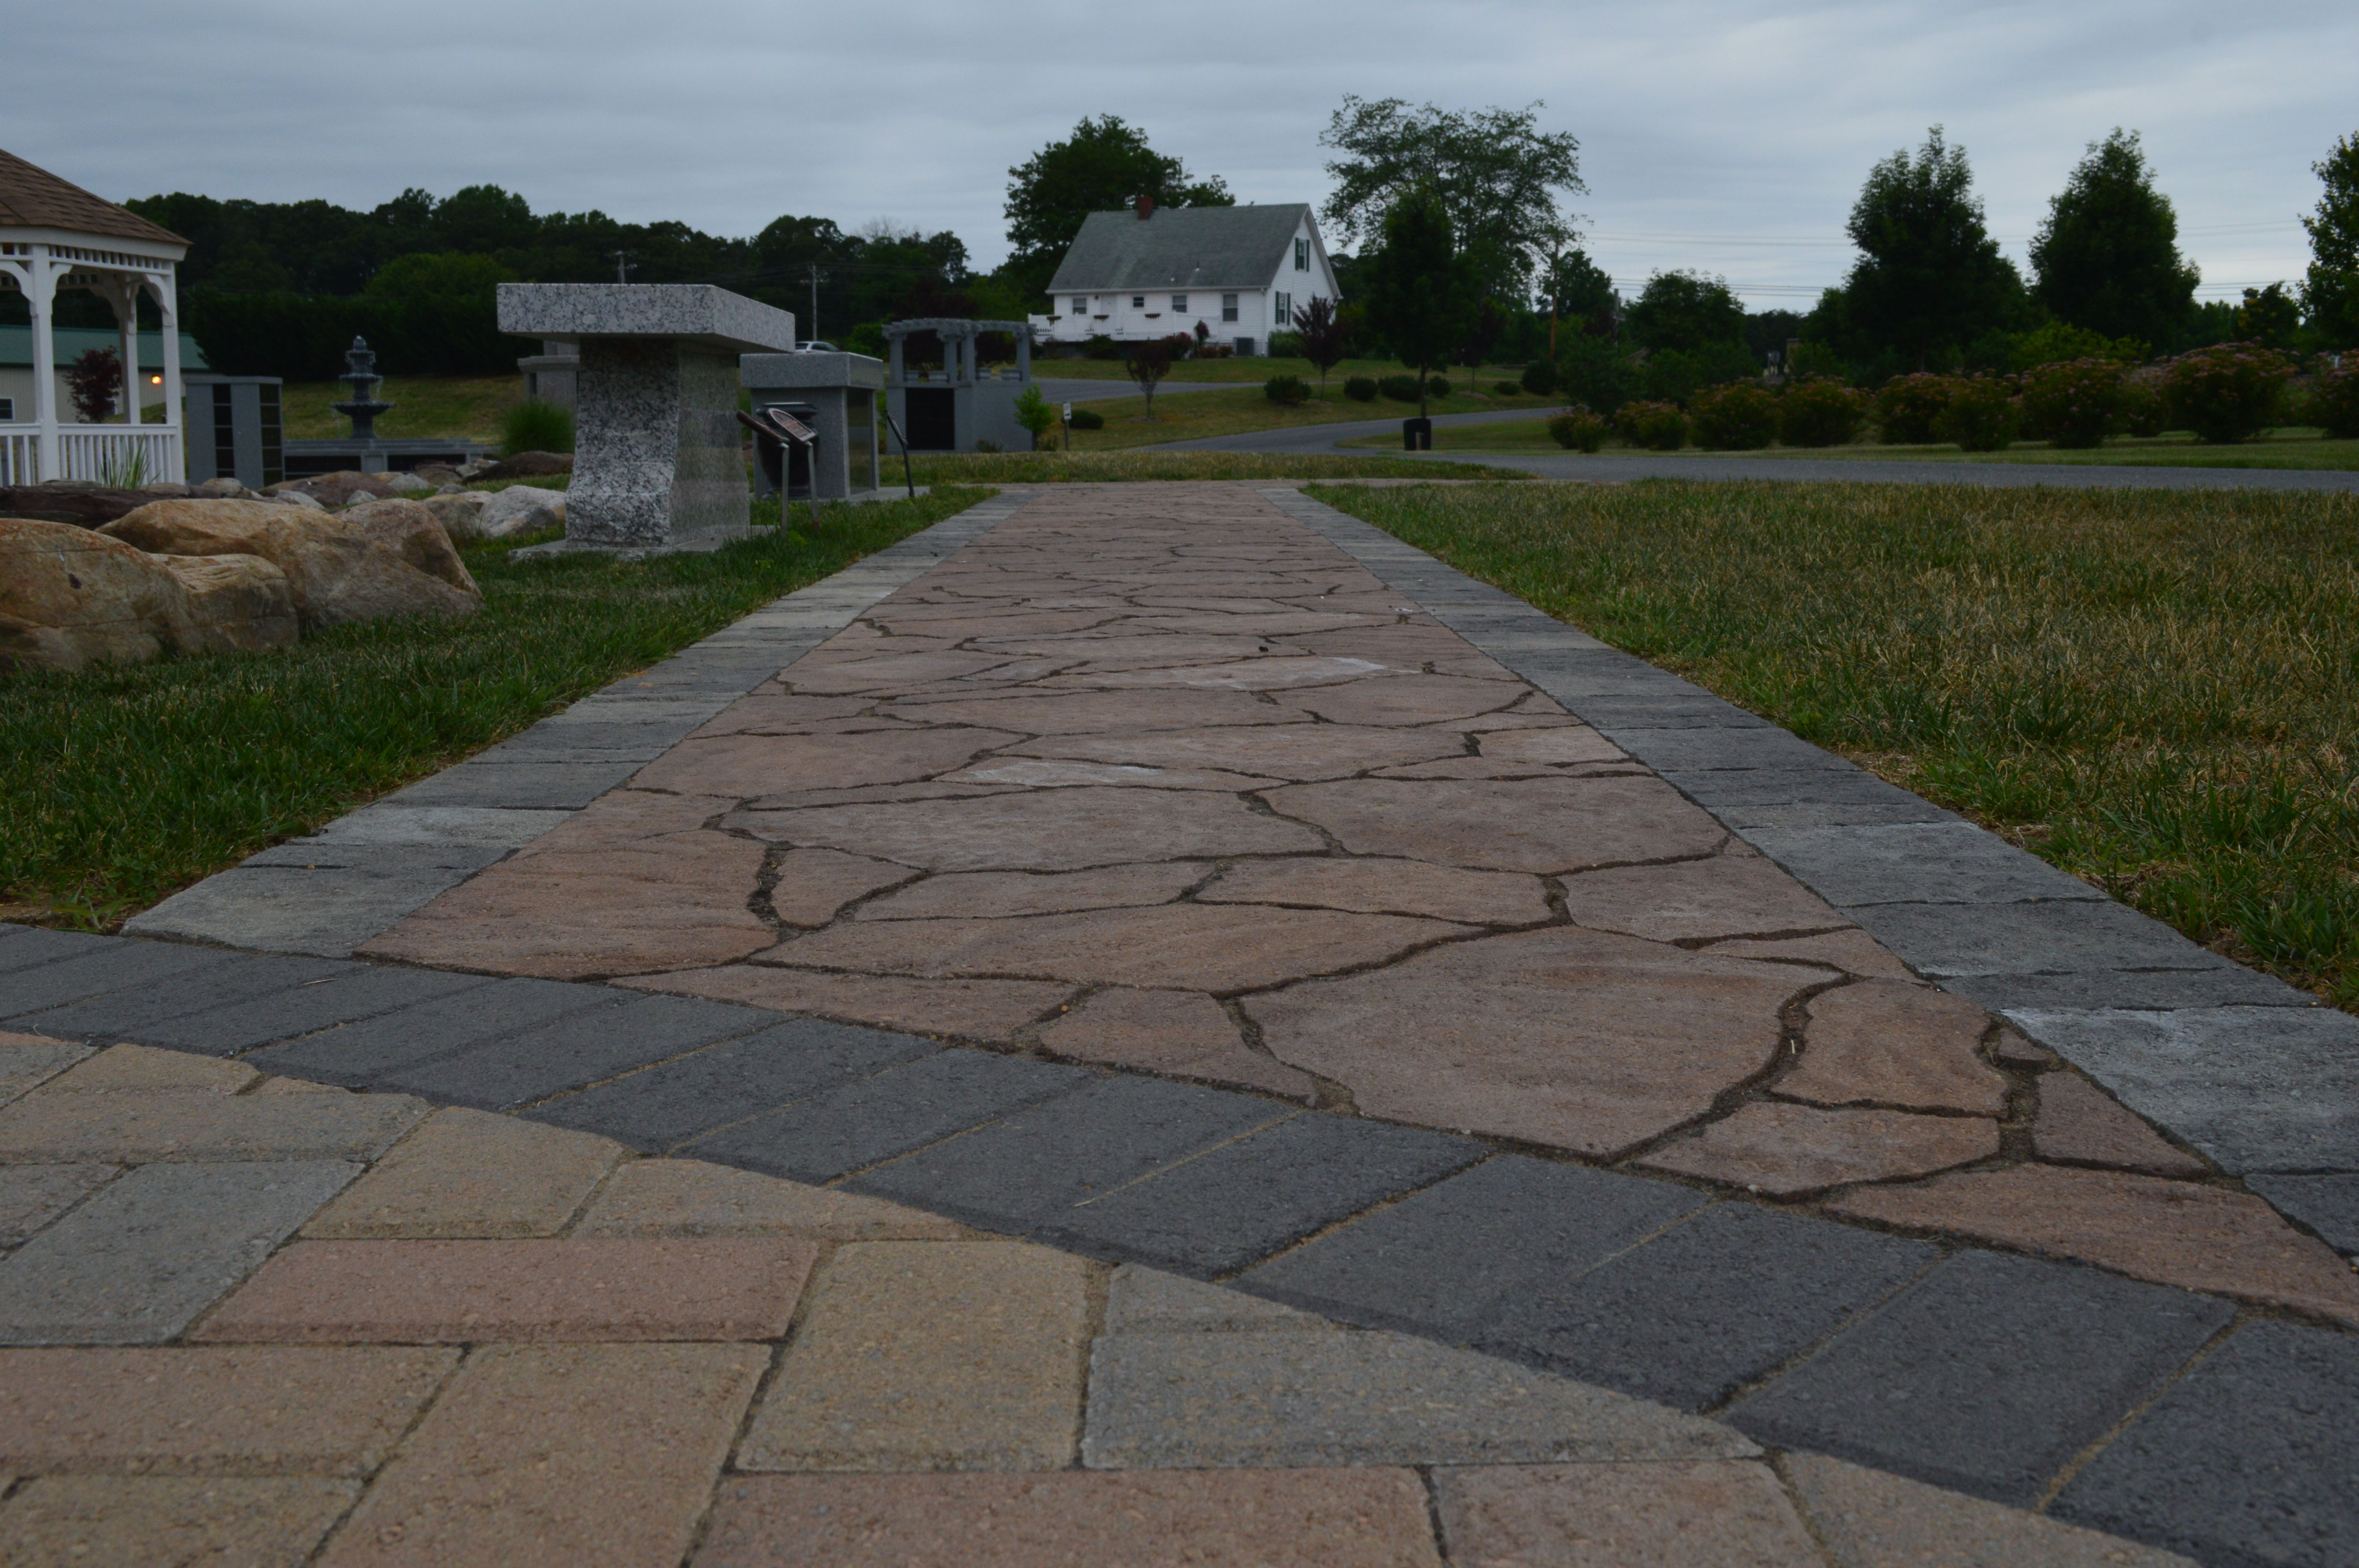 The project consists of an Aquascape Inc. ecosystem pond with streams surrounded by Pennsylvania Fieldstone boulders. The walkways are being constructed using Outdoor Living by Belgard pavers. One walkway is Holland Stone pavers and border. the other walkway is Mega Arbel patio slab with a Lafitt border.